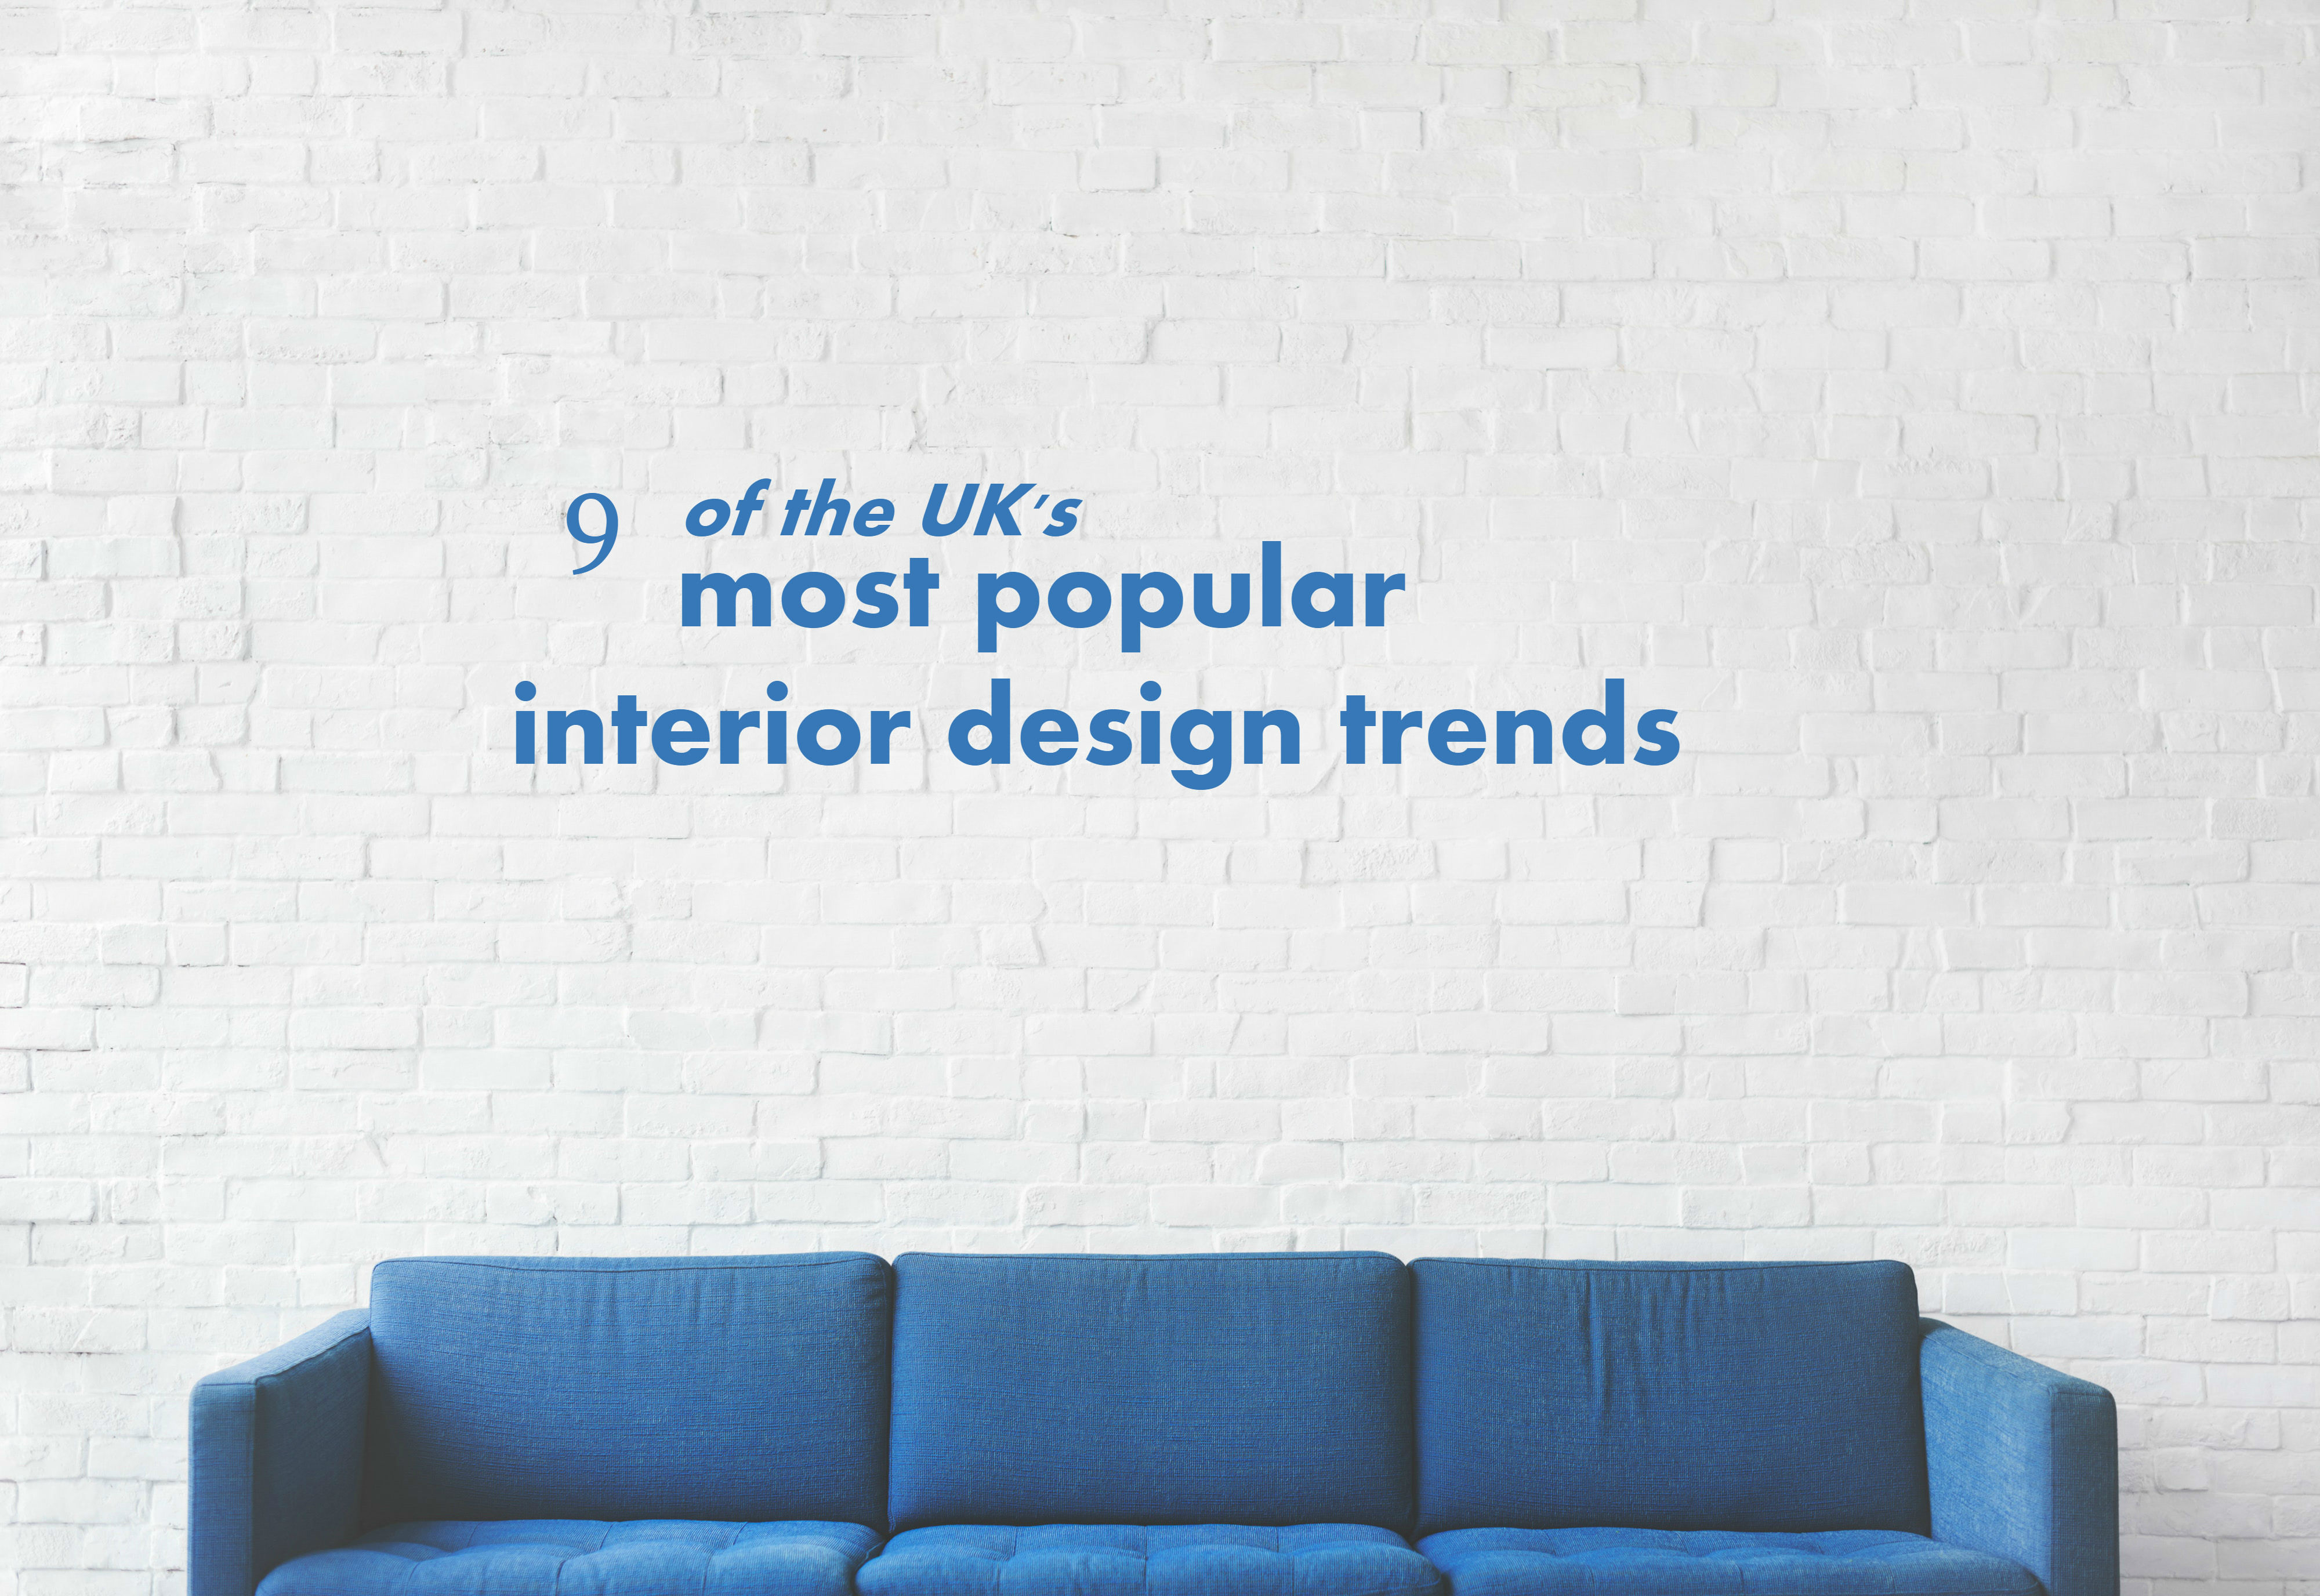 9 of the UK's most popular interior design trends